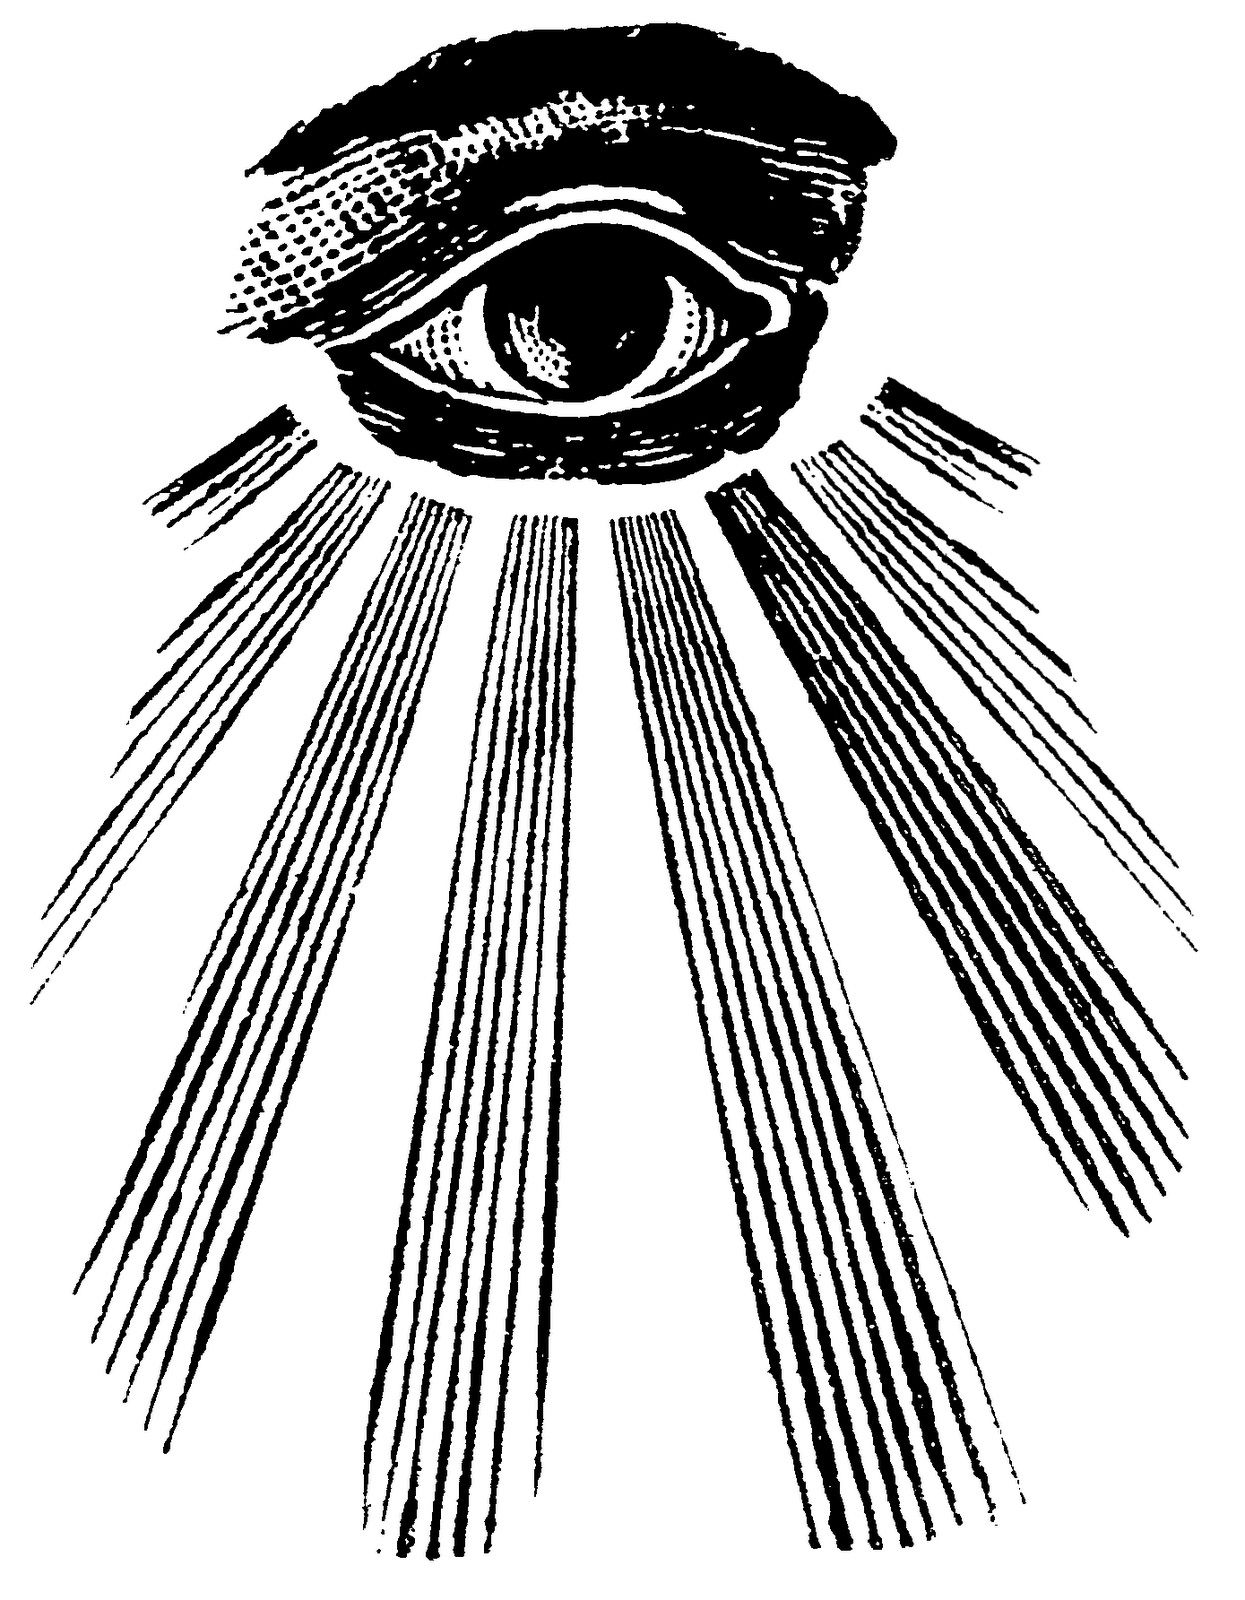 Sacred samples of Christian iconography: the icon The All-Seeing Eye